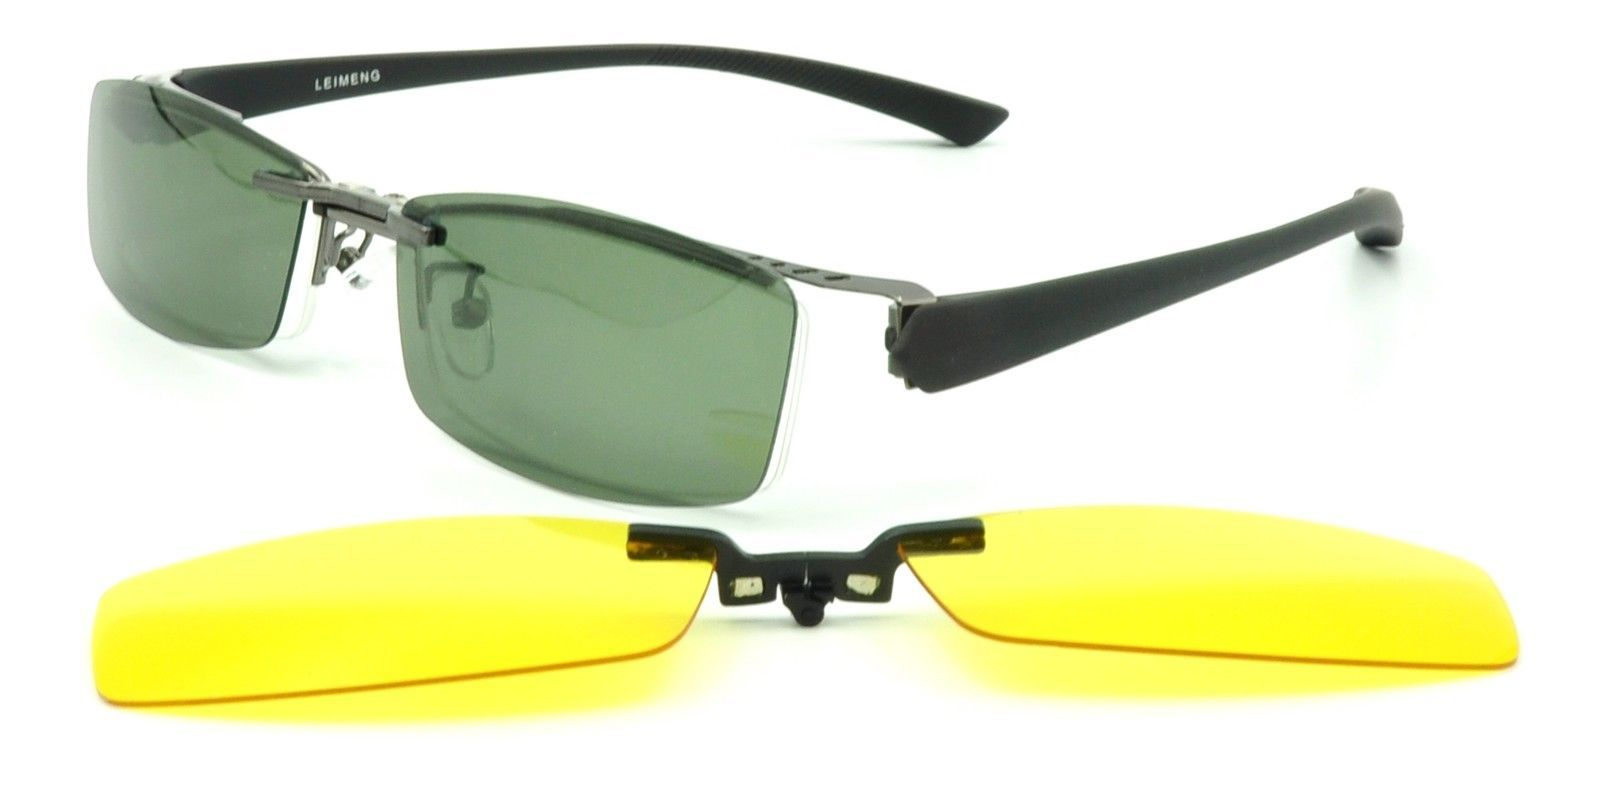 Rimless Eyeglasses With Magnetic Sunglasses : 2 Pcs Magnetic Clip-On Sunglasses Mens Half Rimless ...